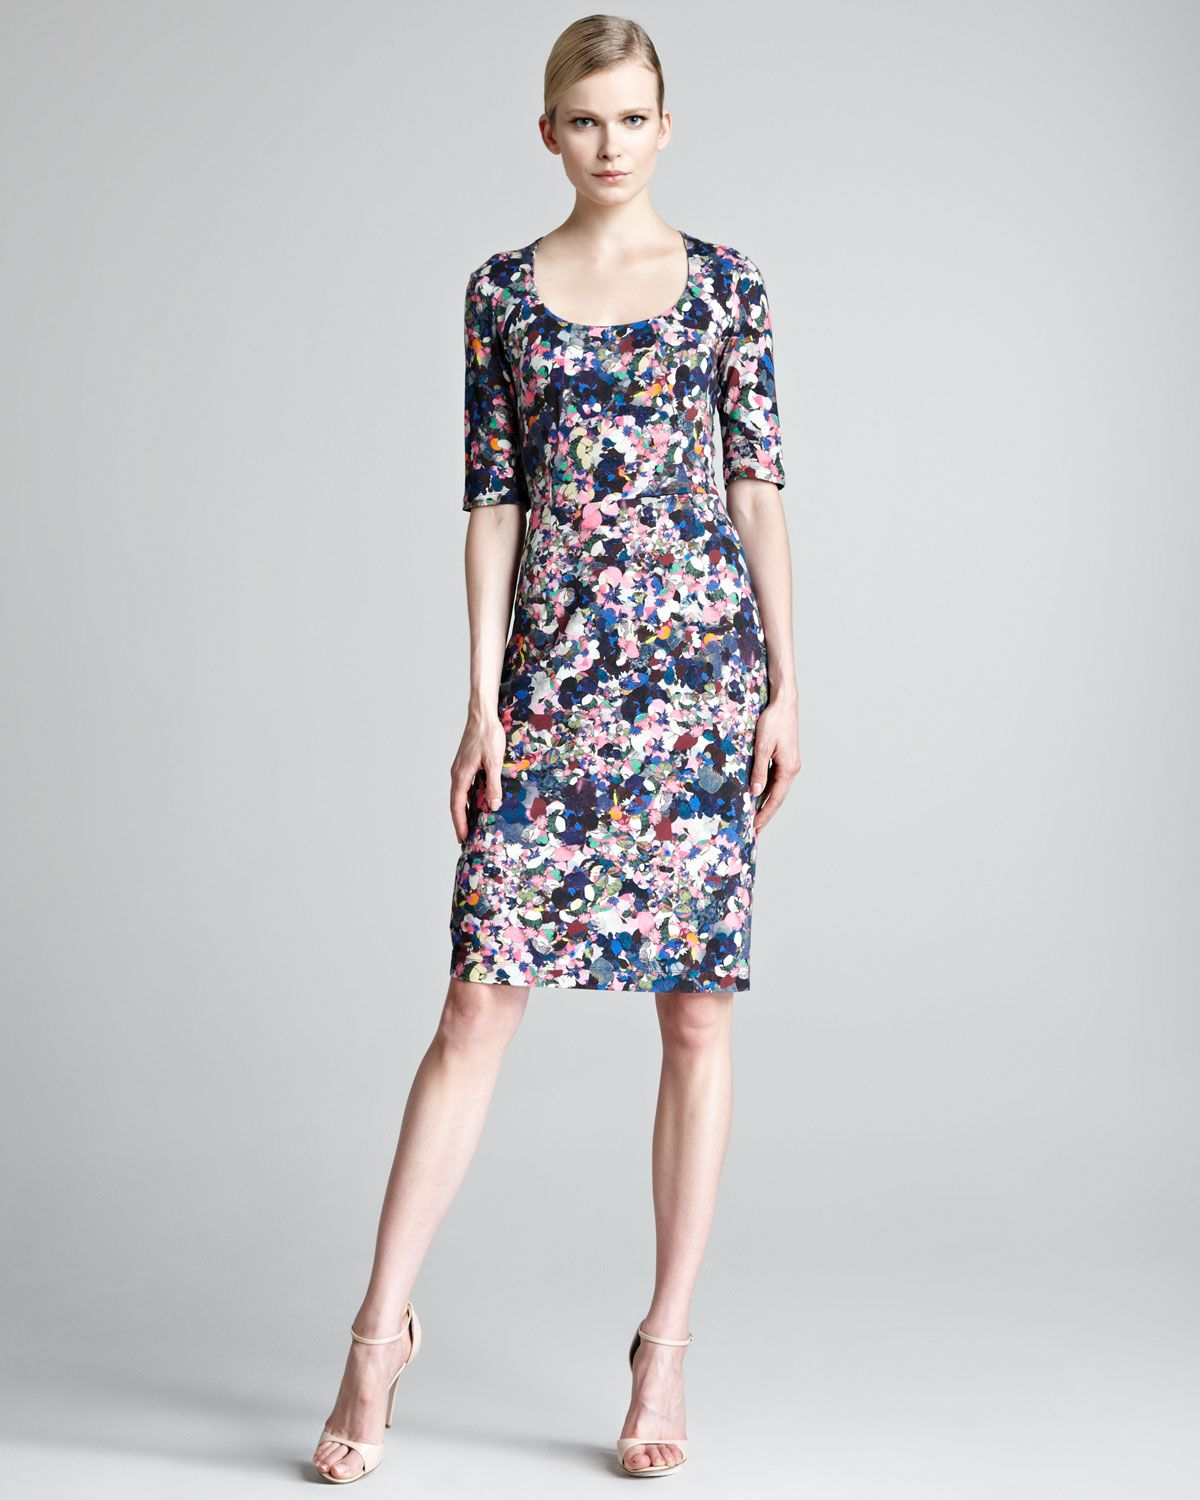 Etta floral print dress neiman marcus i want to wear etta floral print dress neiman marcus ombrellifo Choice Image